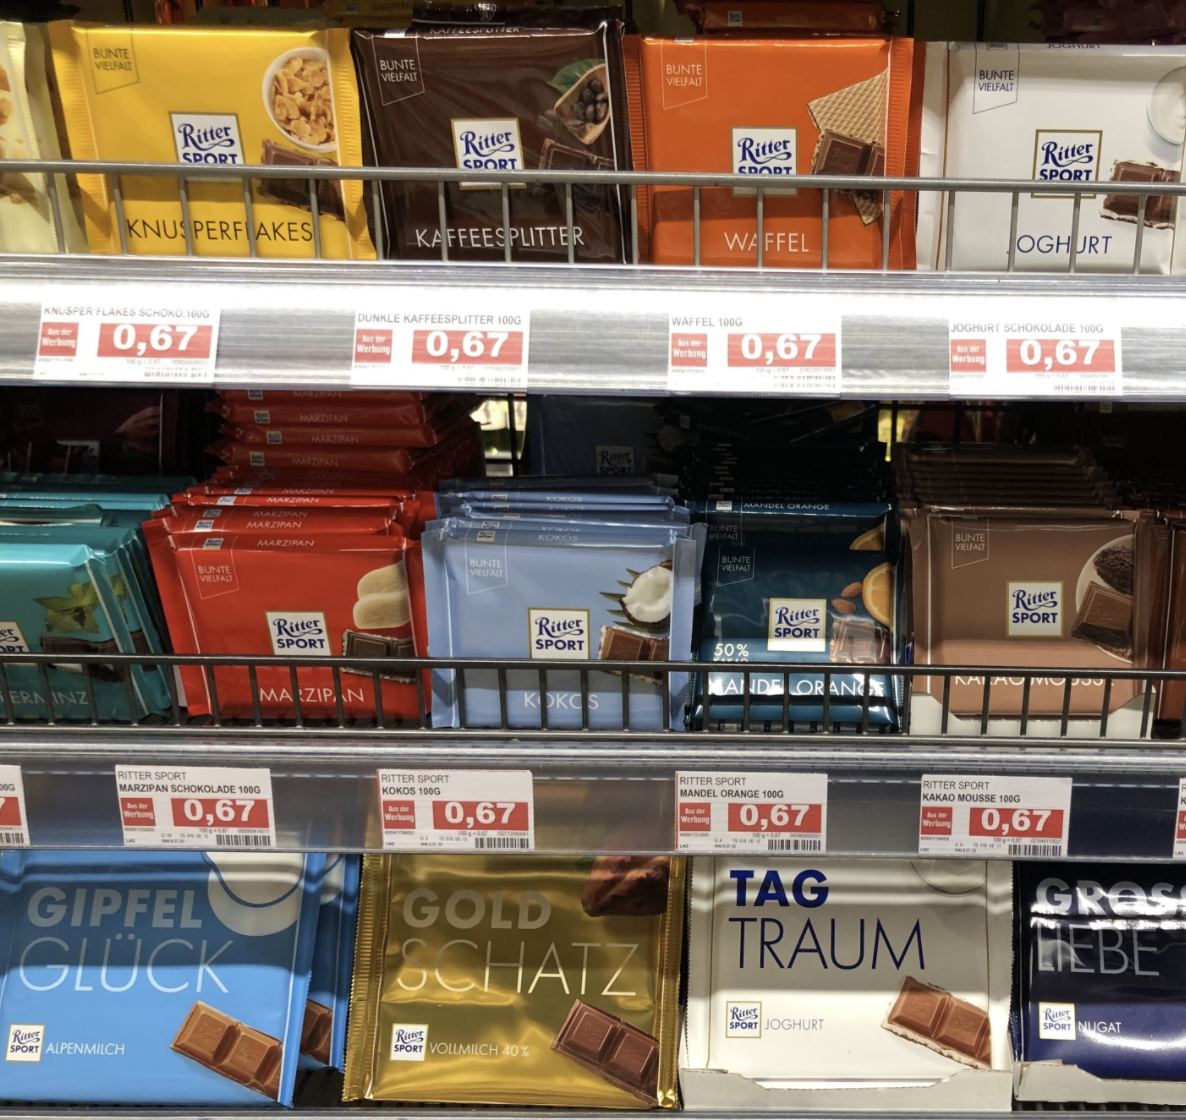 A grocery store shelf display of Ritter chocolate bars